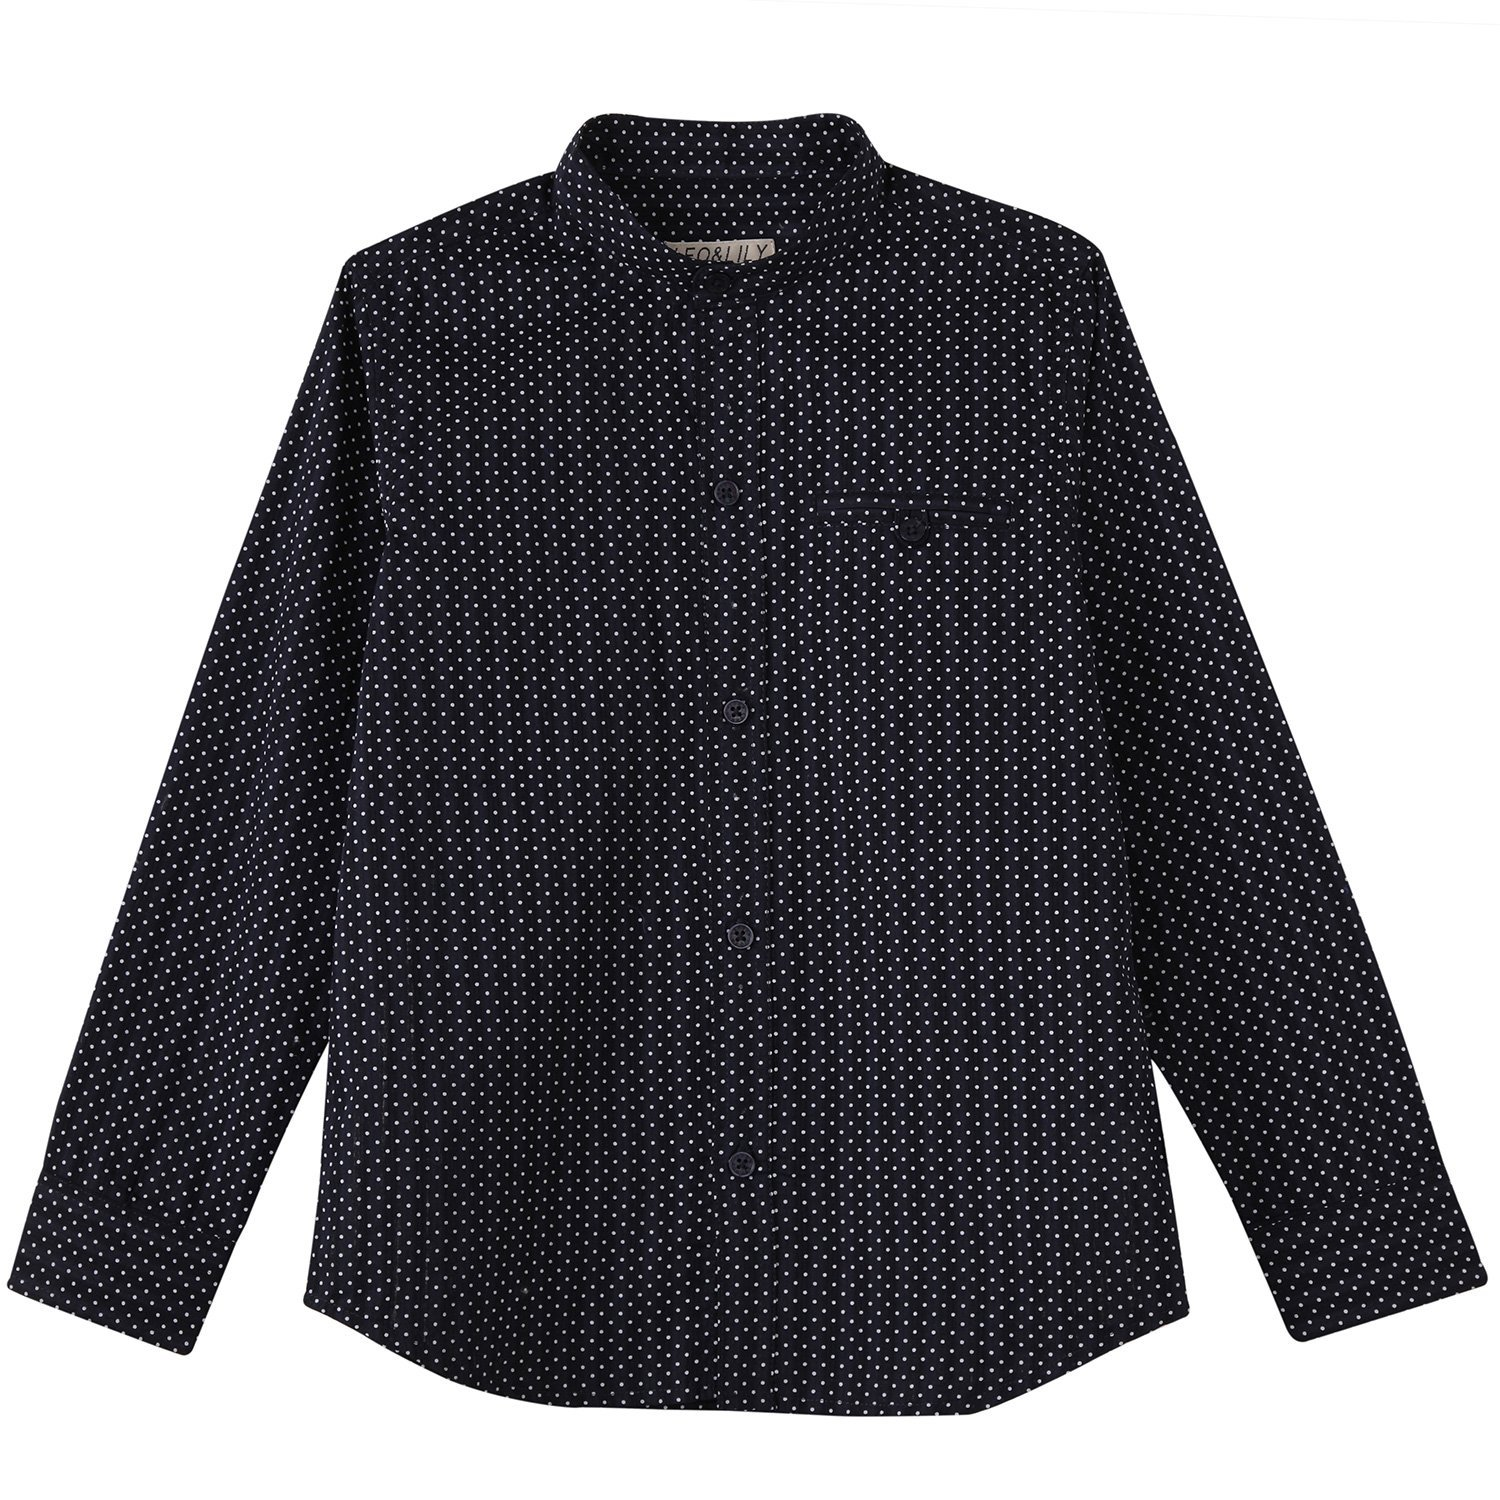 Leo&Lily Big Boys' LLB263-6-Navy, Navy, 6 by Leo&Lily (Image #6)